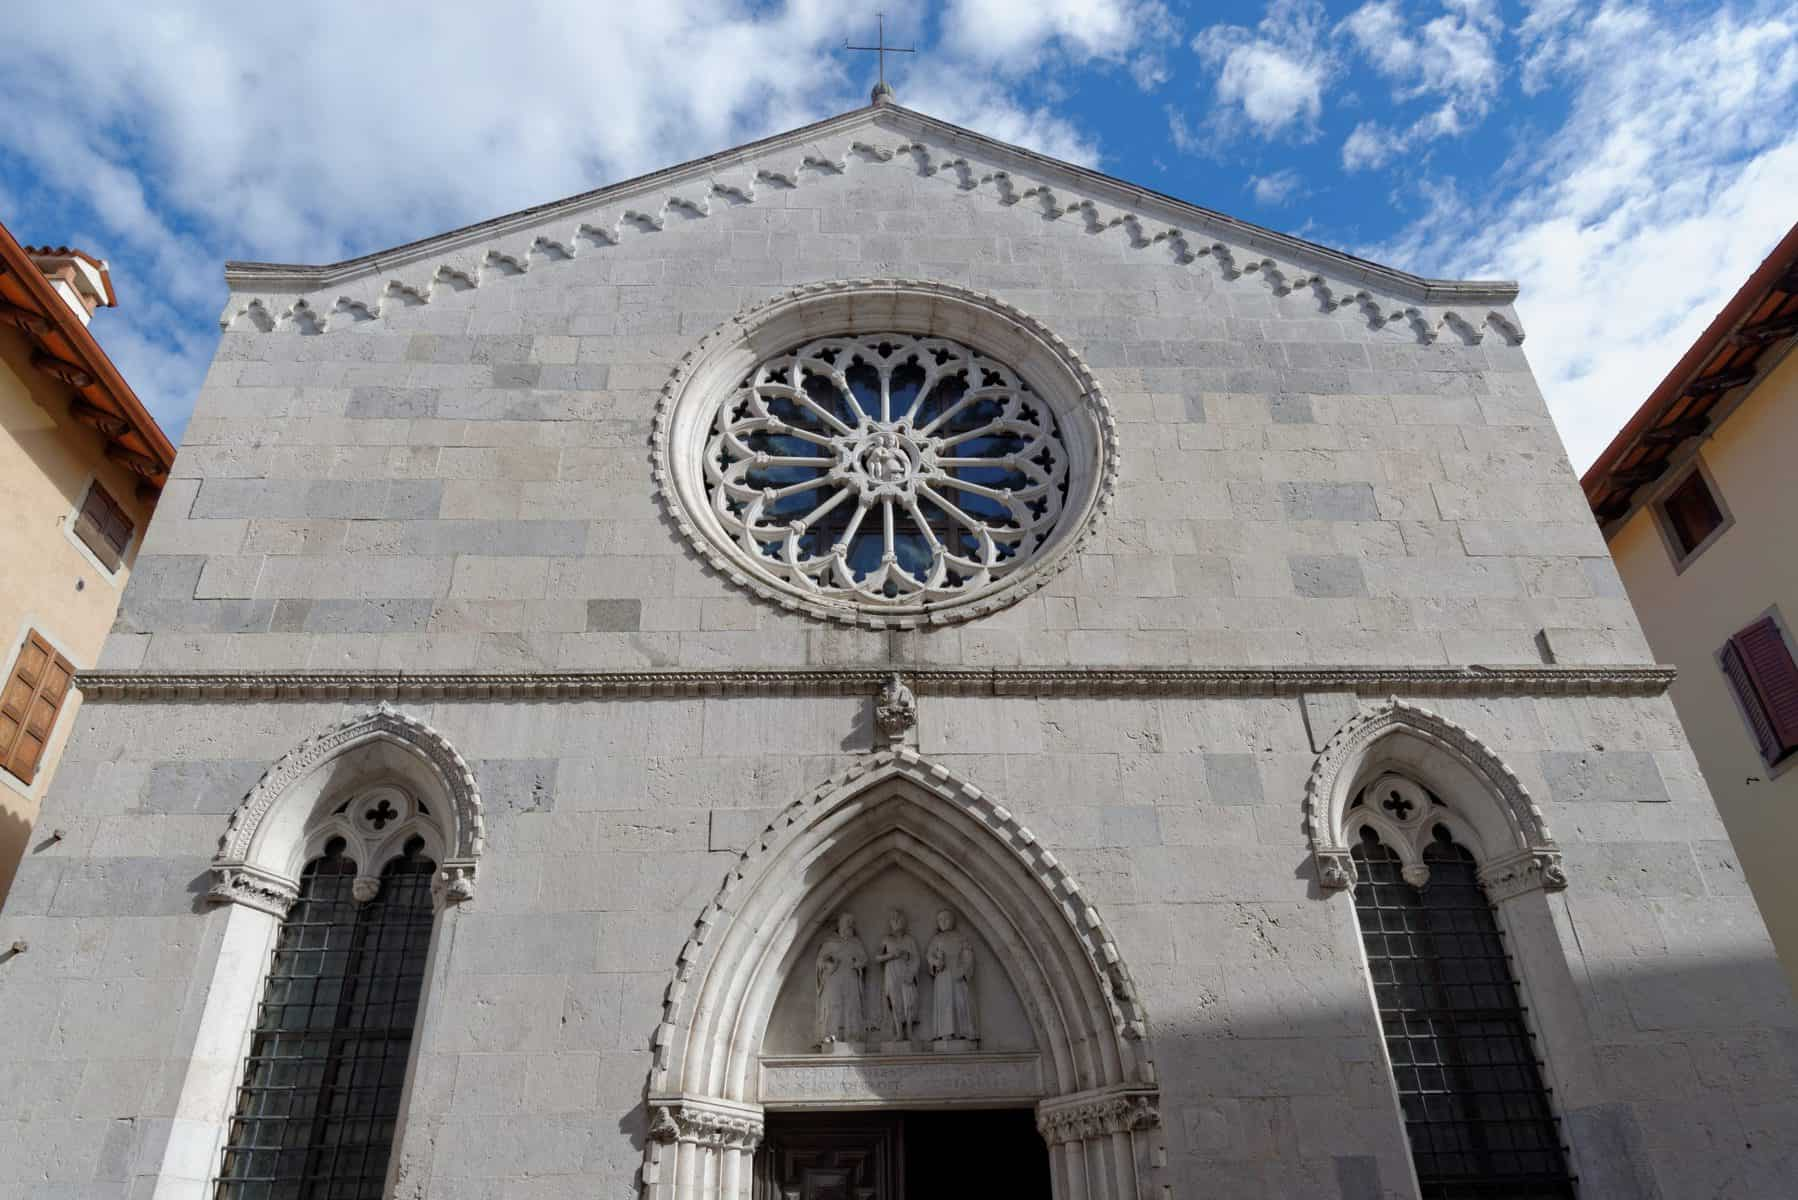 rose window ofChiesa di Sant'Antonio Abate